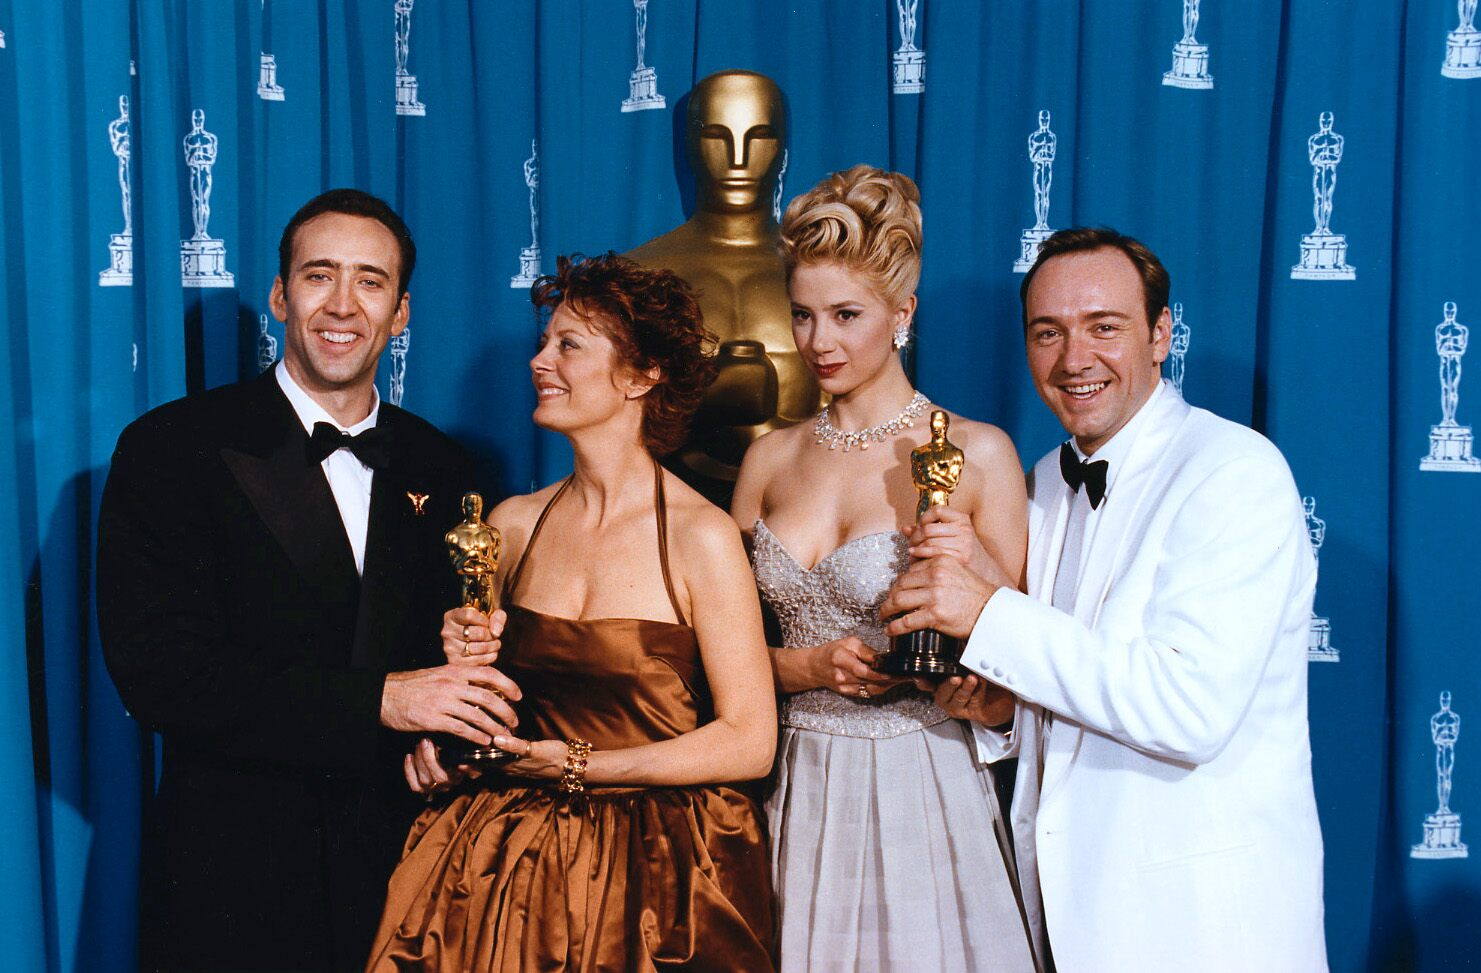 OSCARS 2013 NOMINEES Full Line Rivalry Aside Pose Group Photo moreover Page4 besides 1996 further Directors Guild America Preview Will Dga Choose in addition Obama Kicks Off An Economic Safari In Africa. on oscar nominees 2015 group